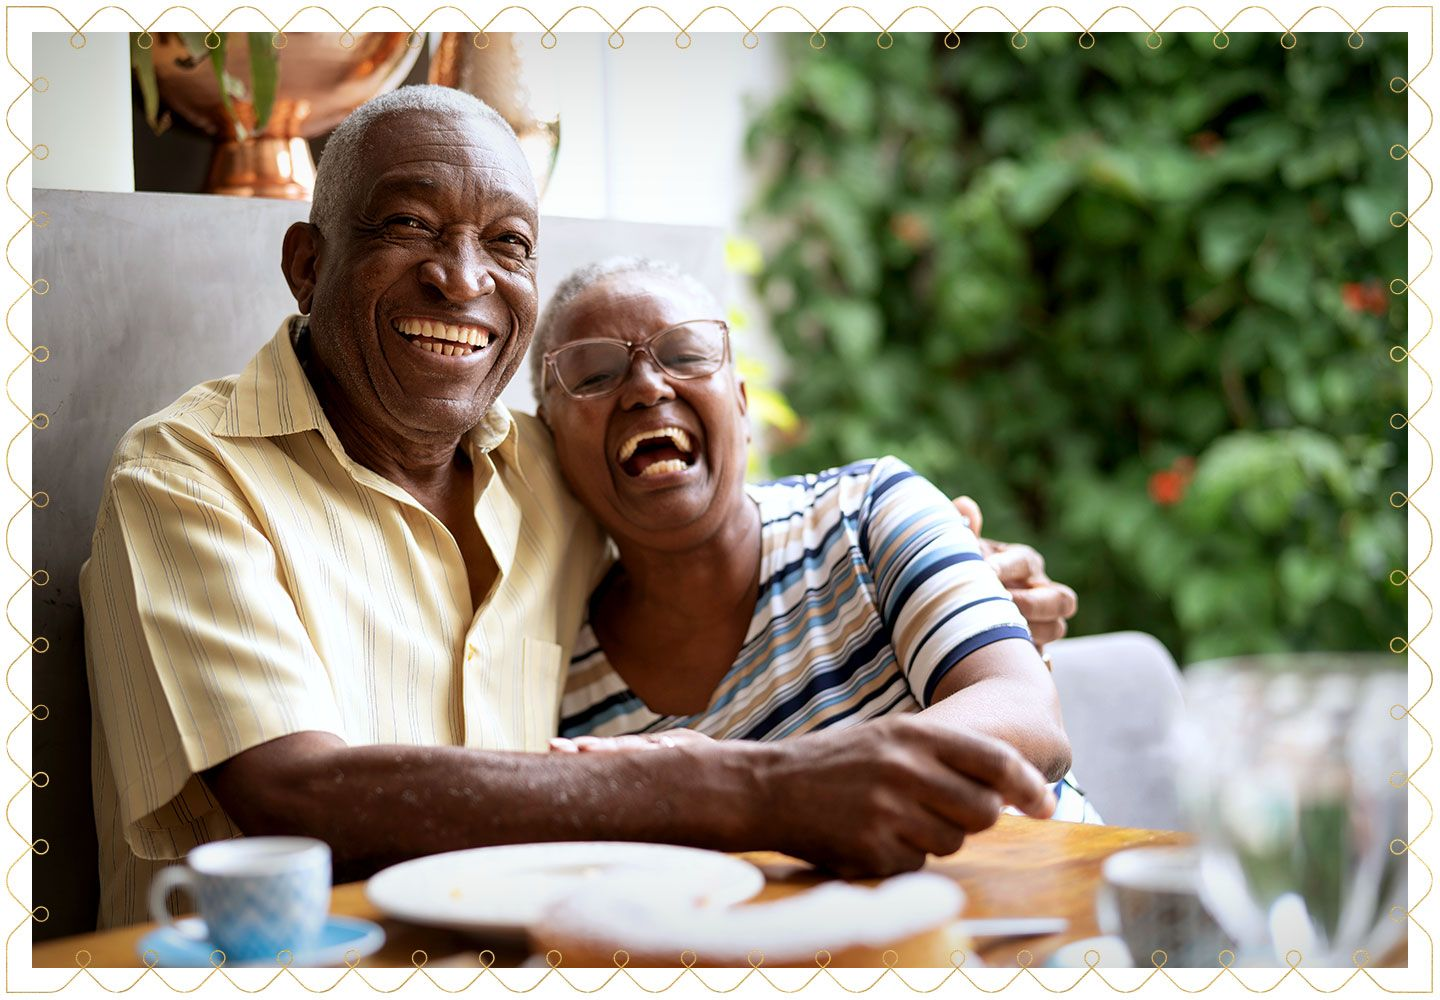 elderly couple laughing at the camera while hugging each other at a table